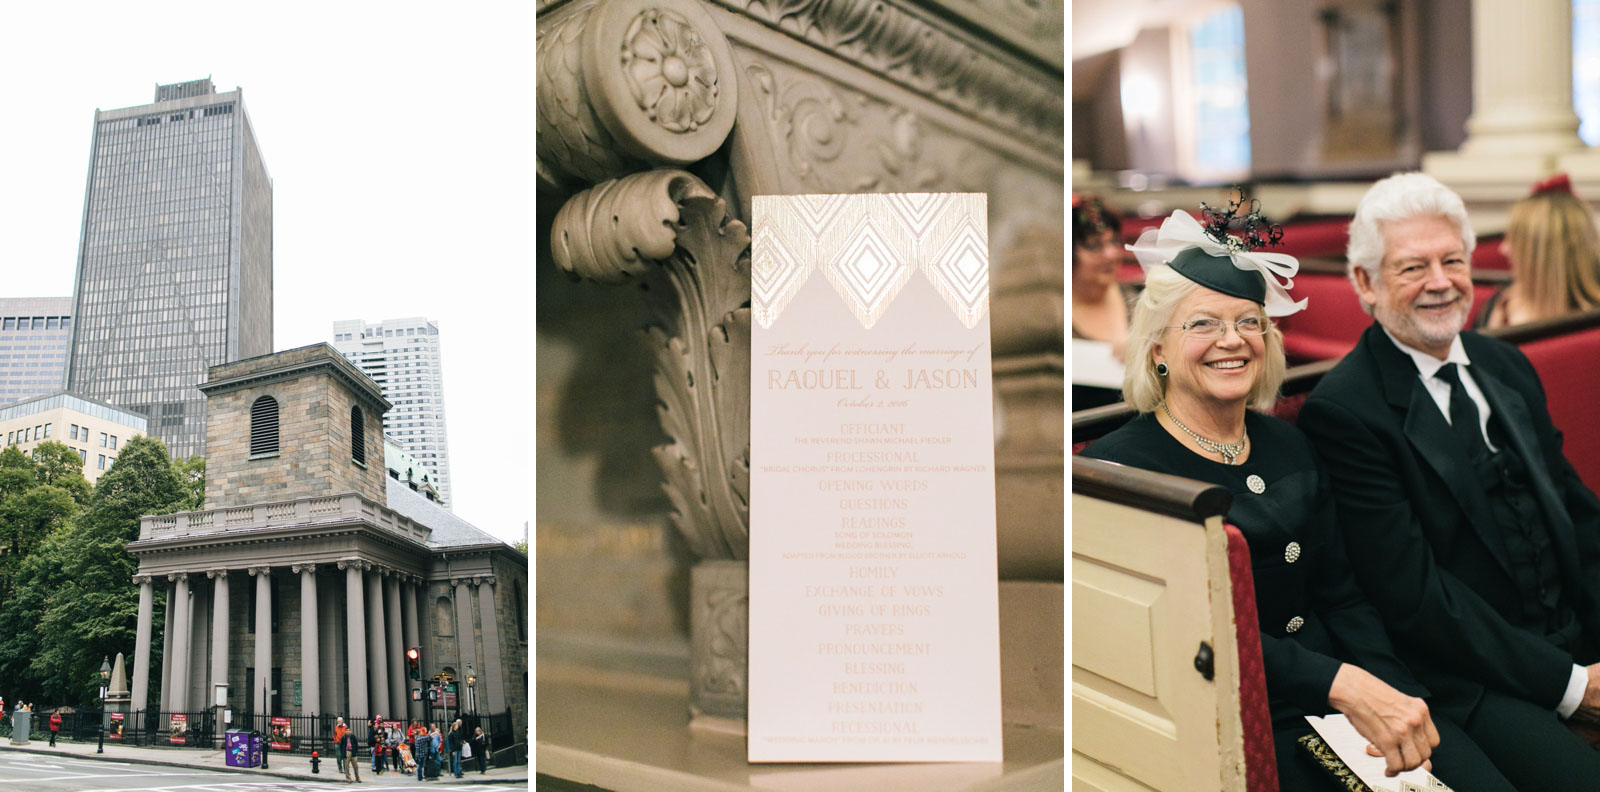 Vintage-inspired wedding at 1920s era King's Chapel in Boston with art deco details